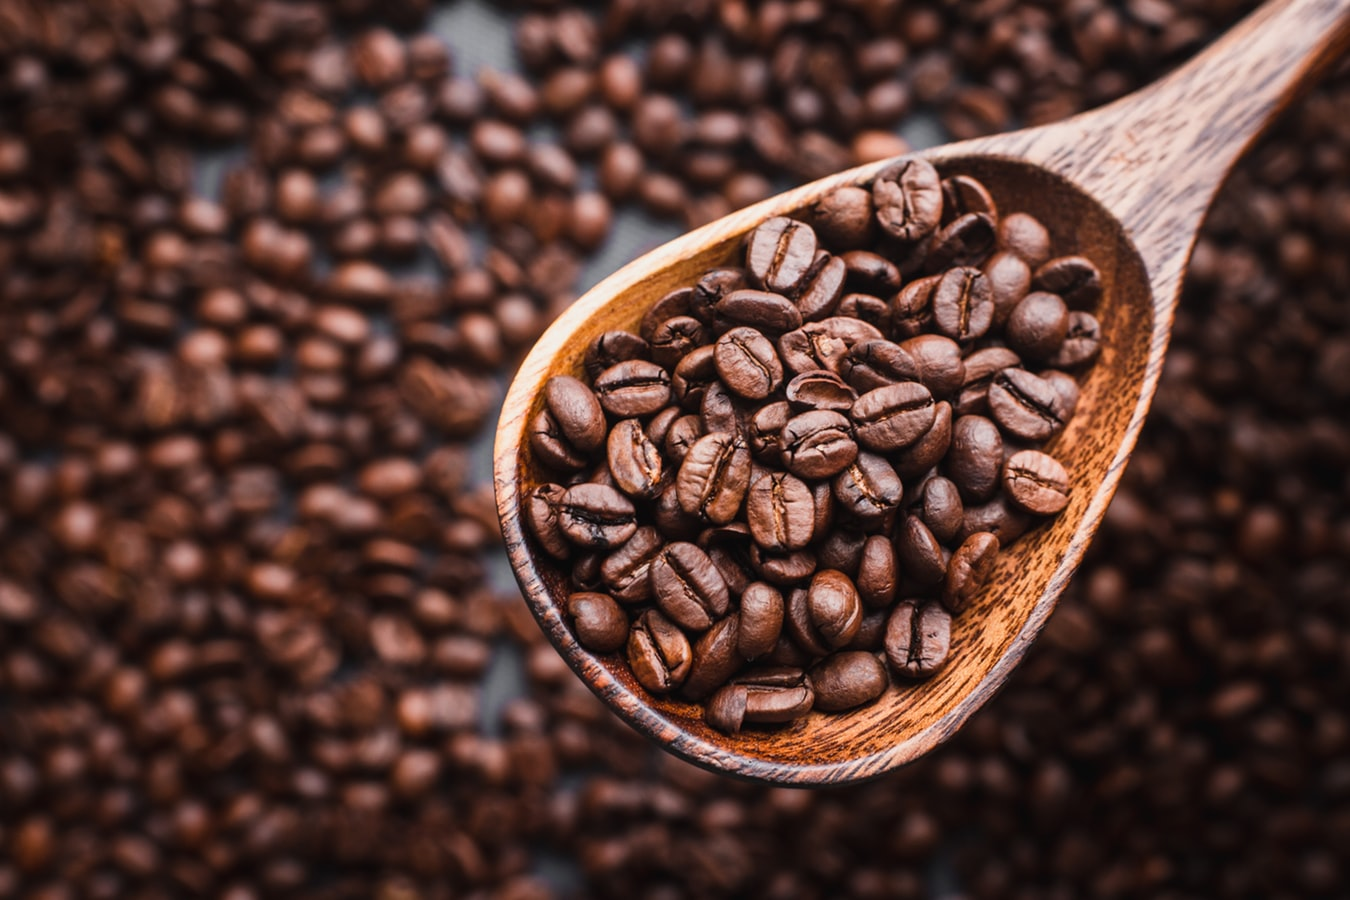 Arabica vs Robusta Coffee- What's the Difference?